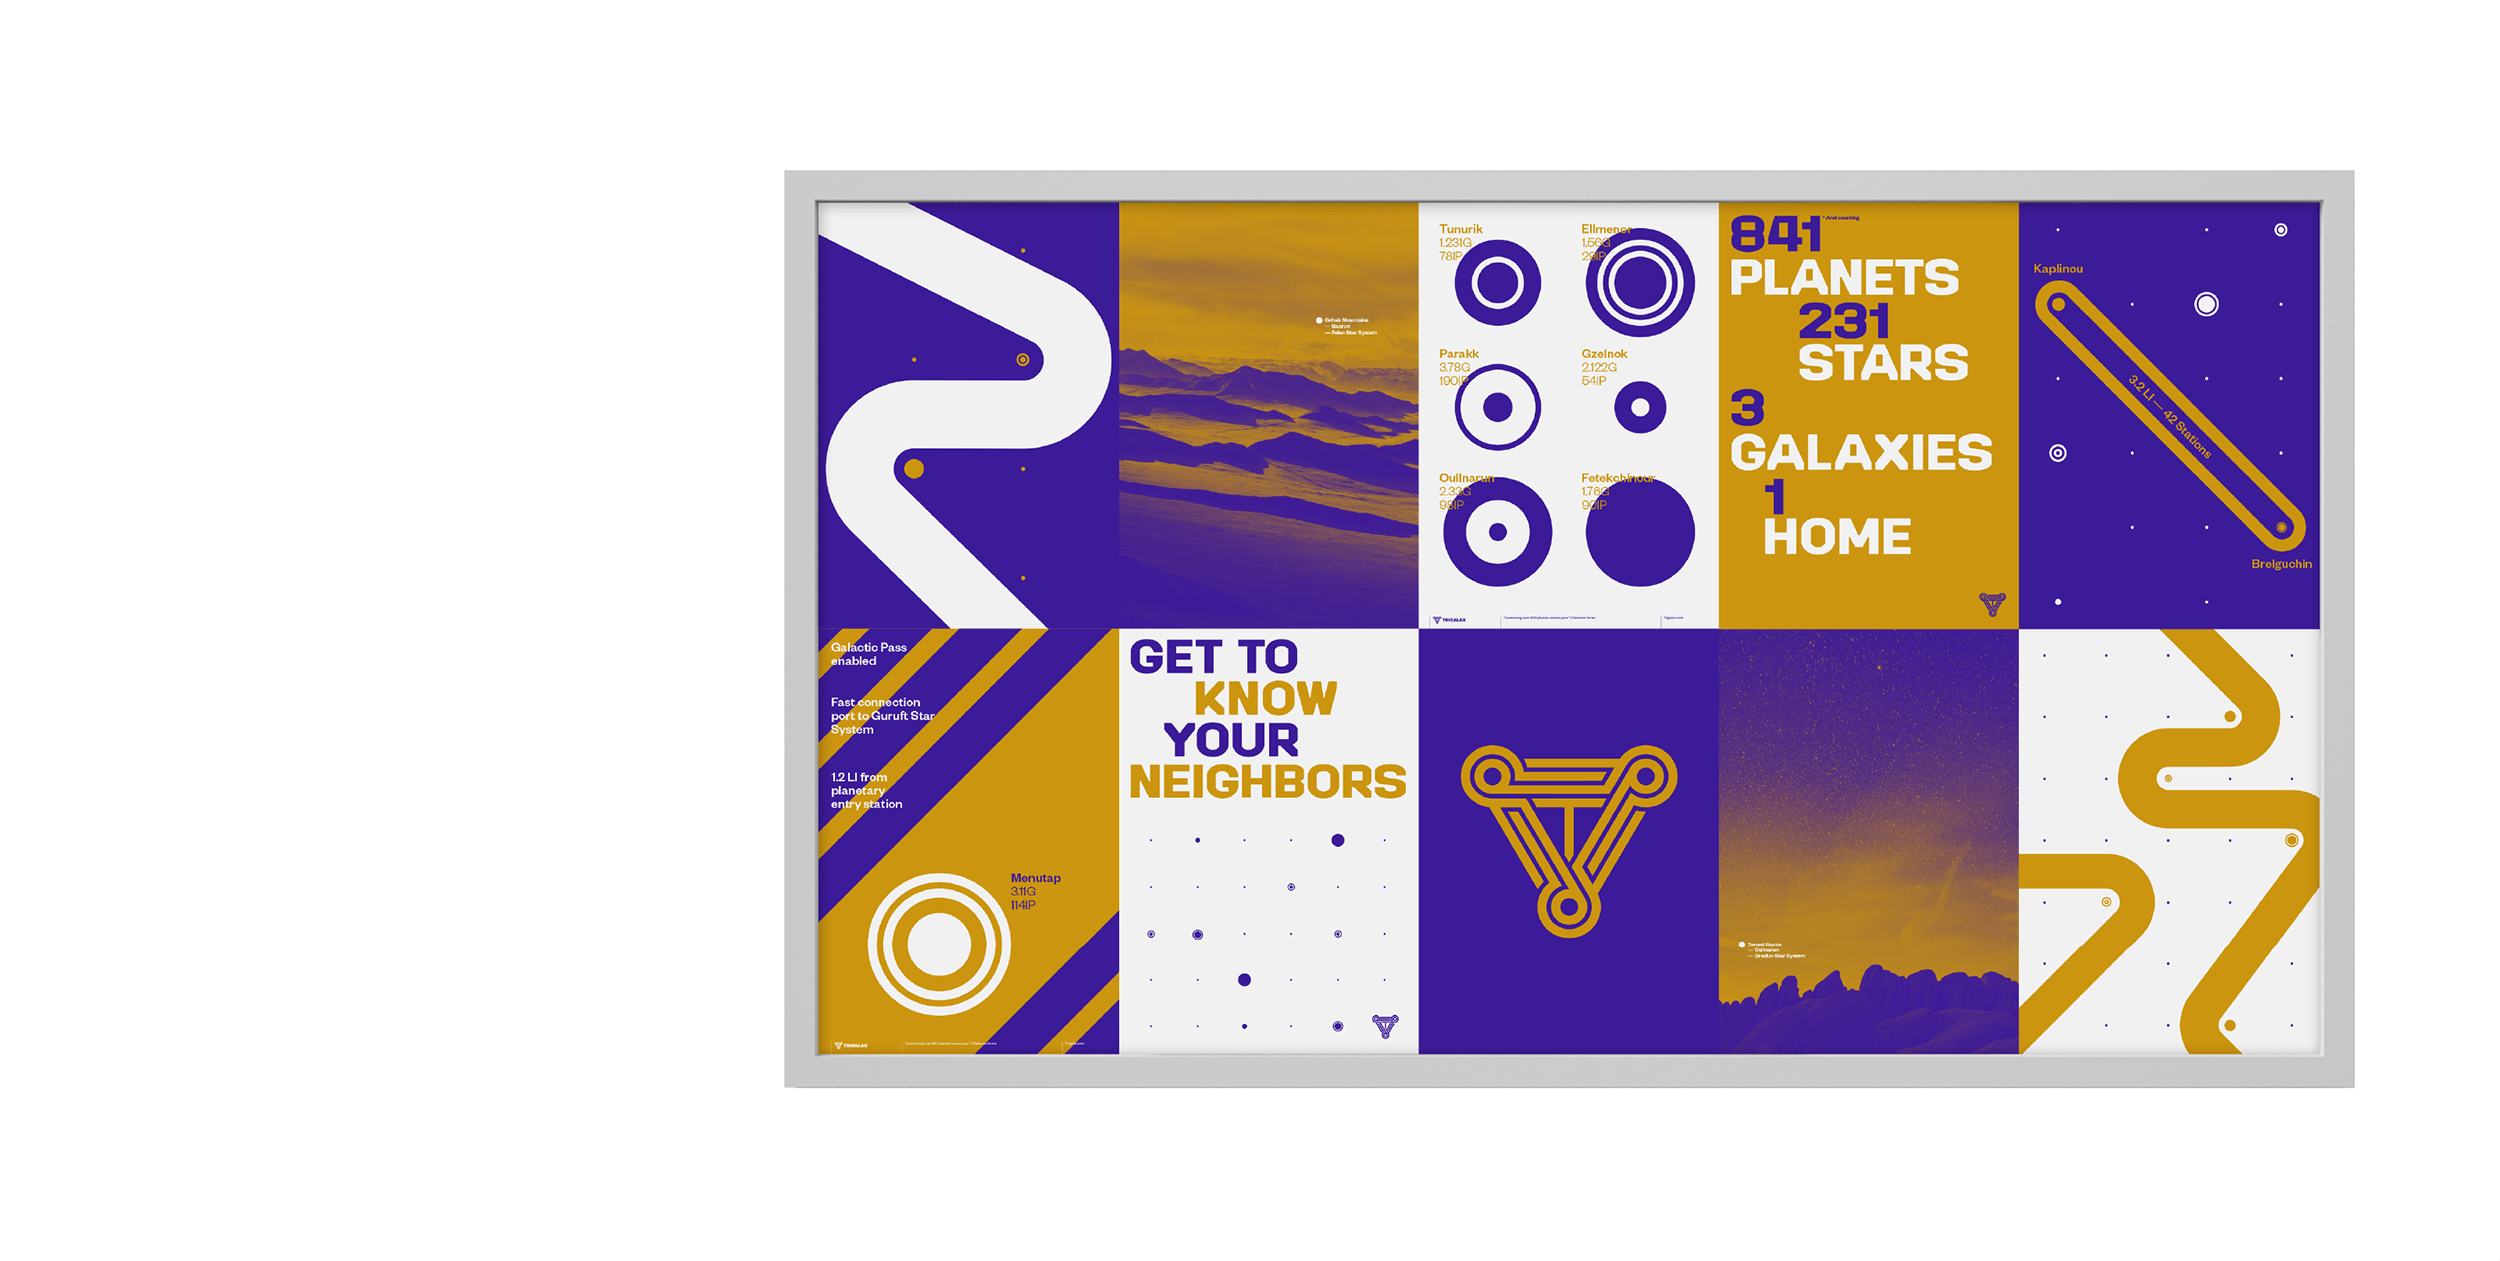 17_Trigalax-Space-Branding-Campaign-Posters-System